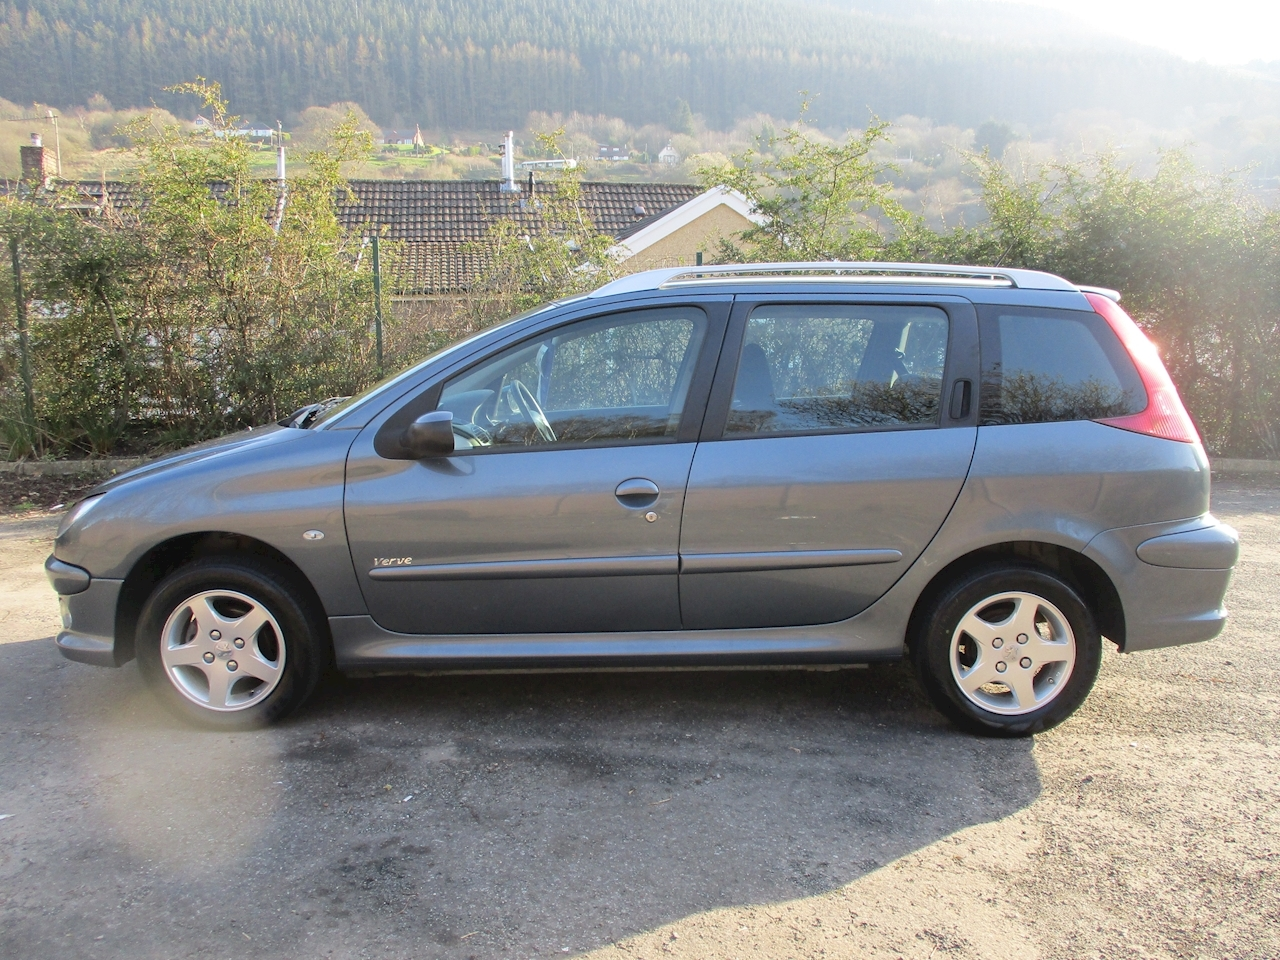 206 Sw Verve E4 Estate 1.4 Manual Petrol